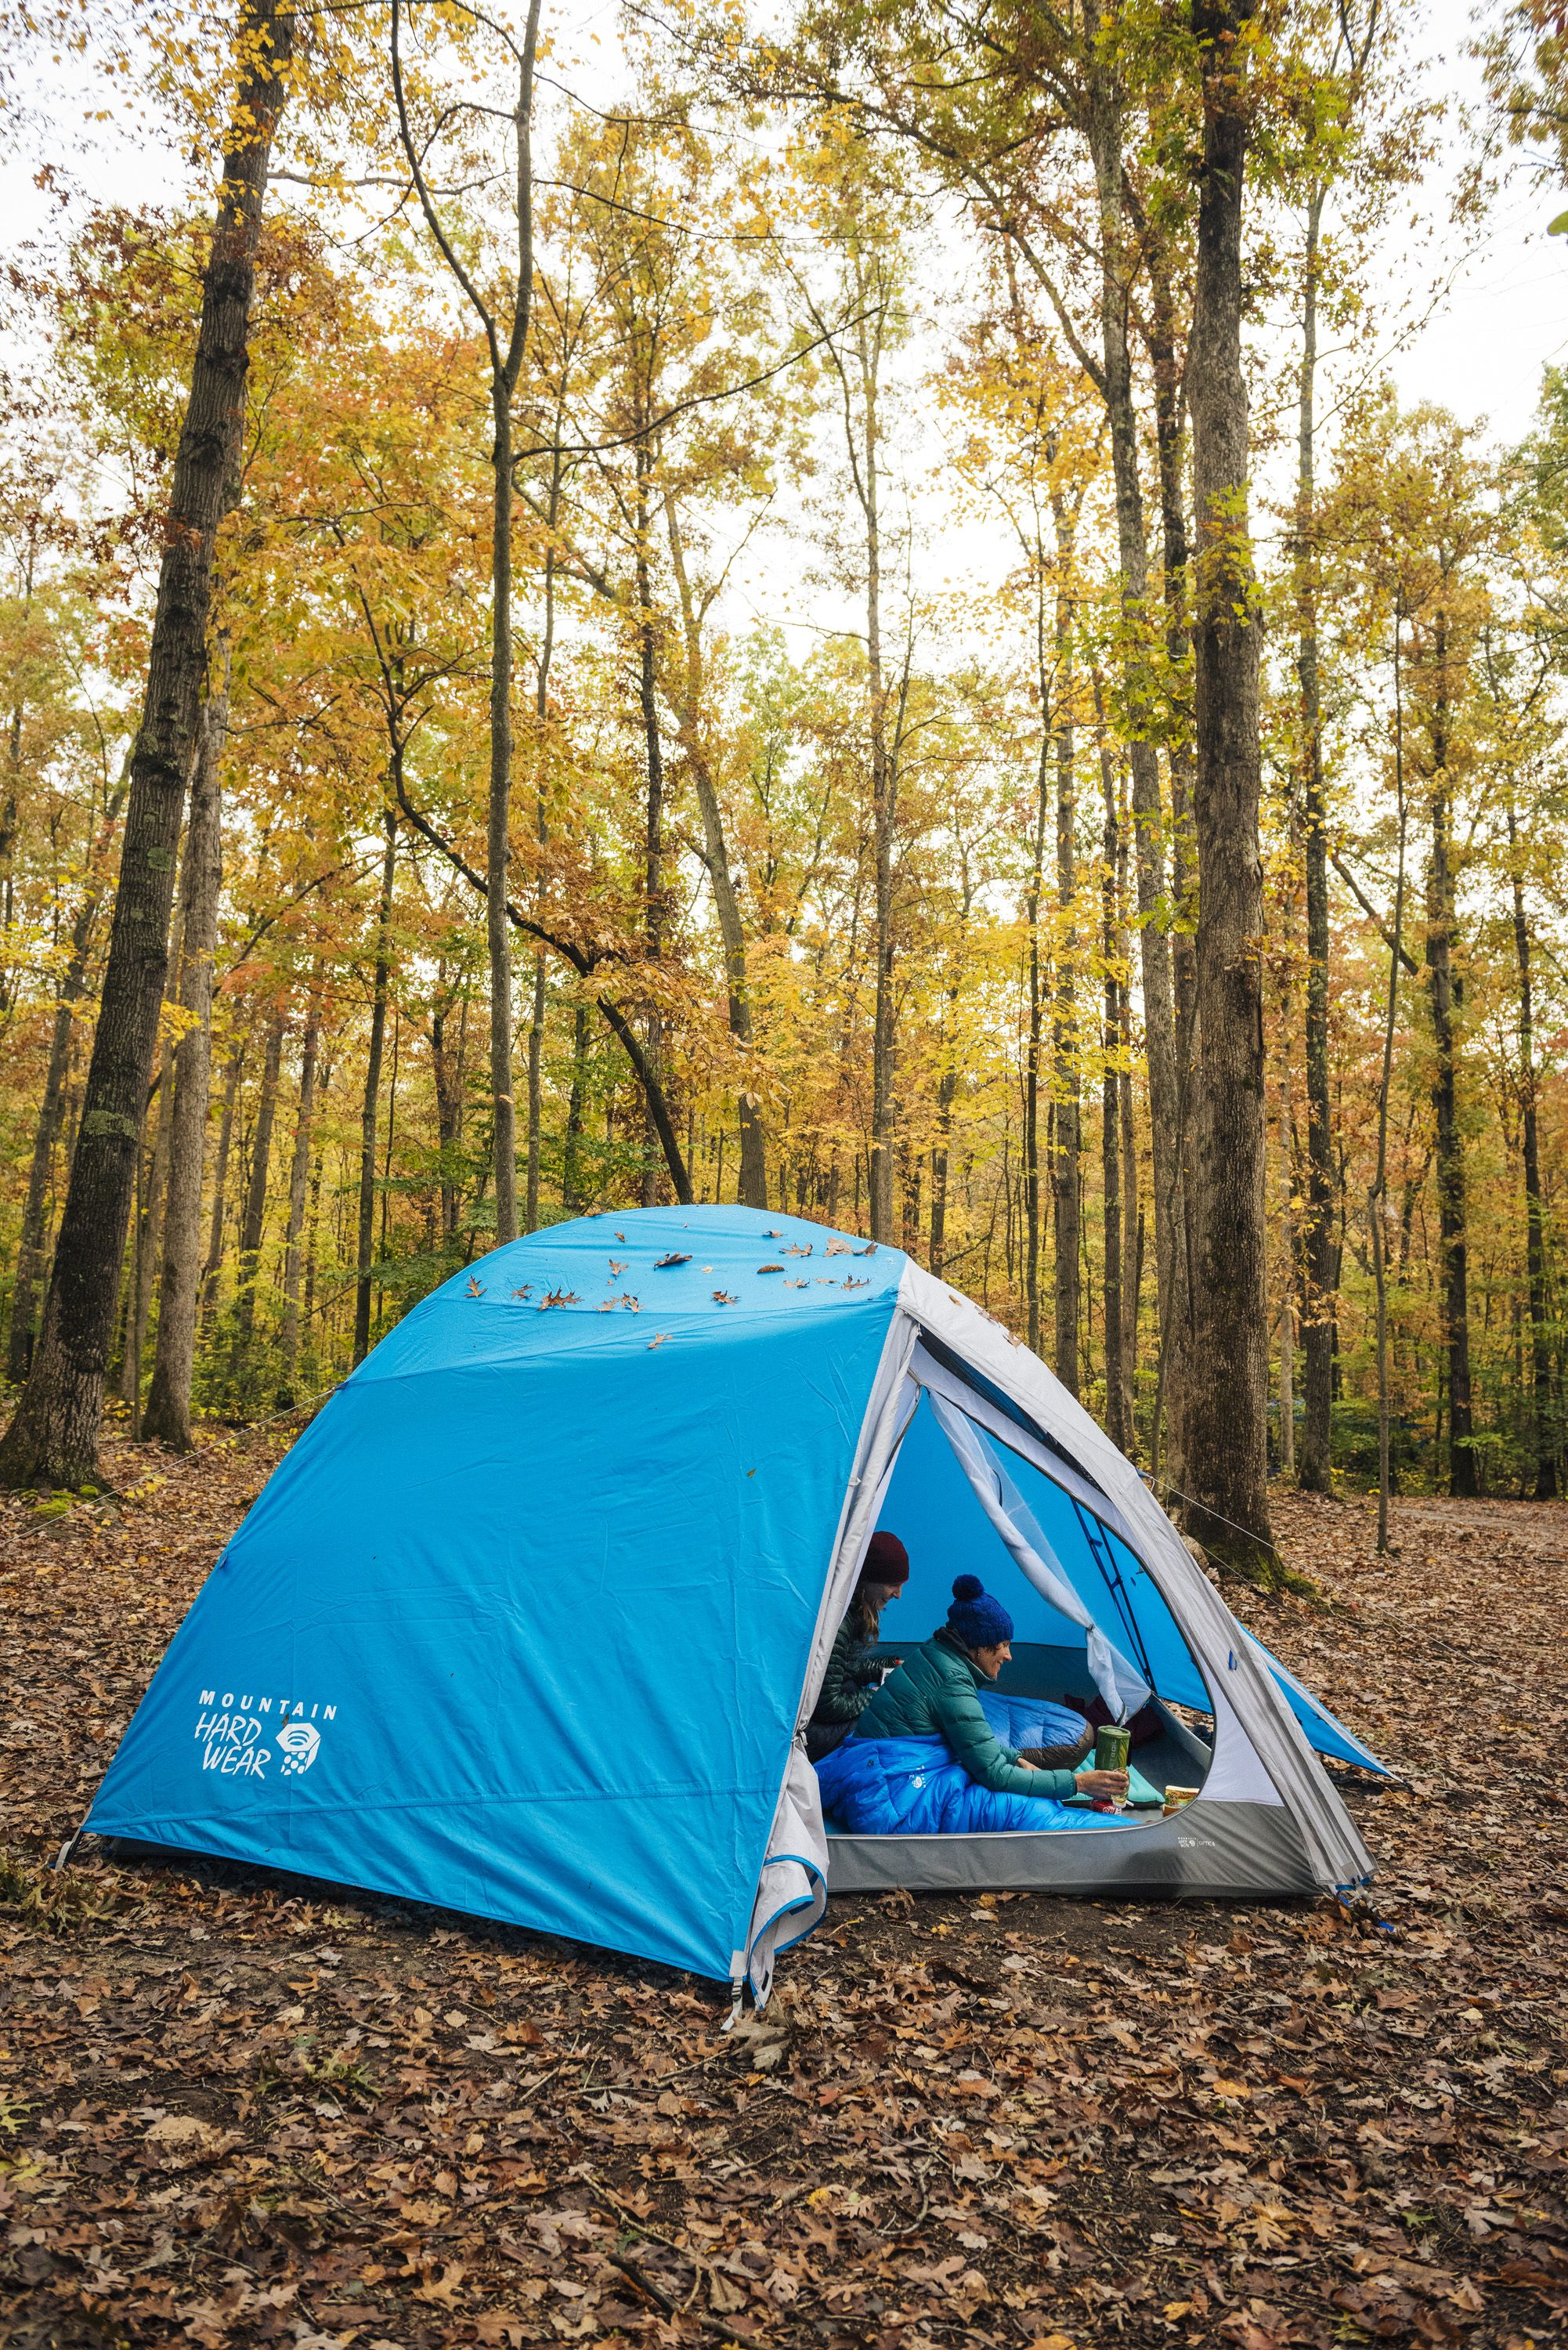 promo code 3b6de a3112 Cheapest Camping Gear Australia | Court Appointed Receiver